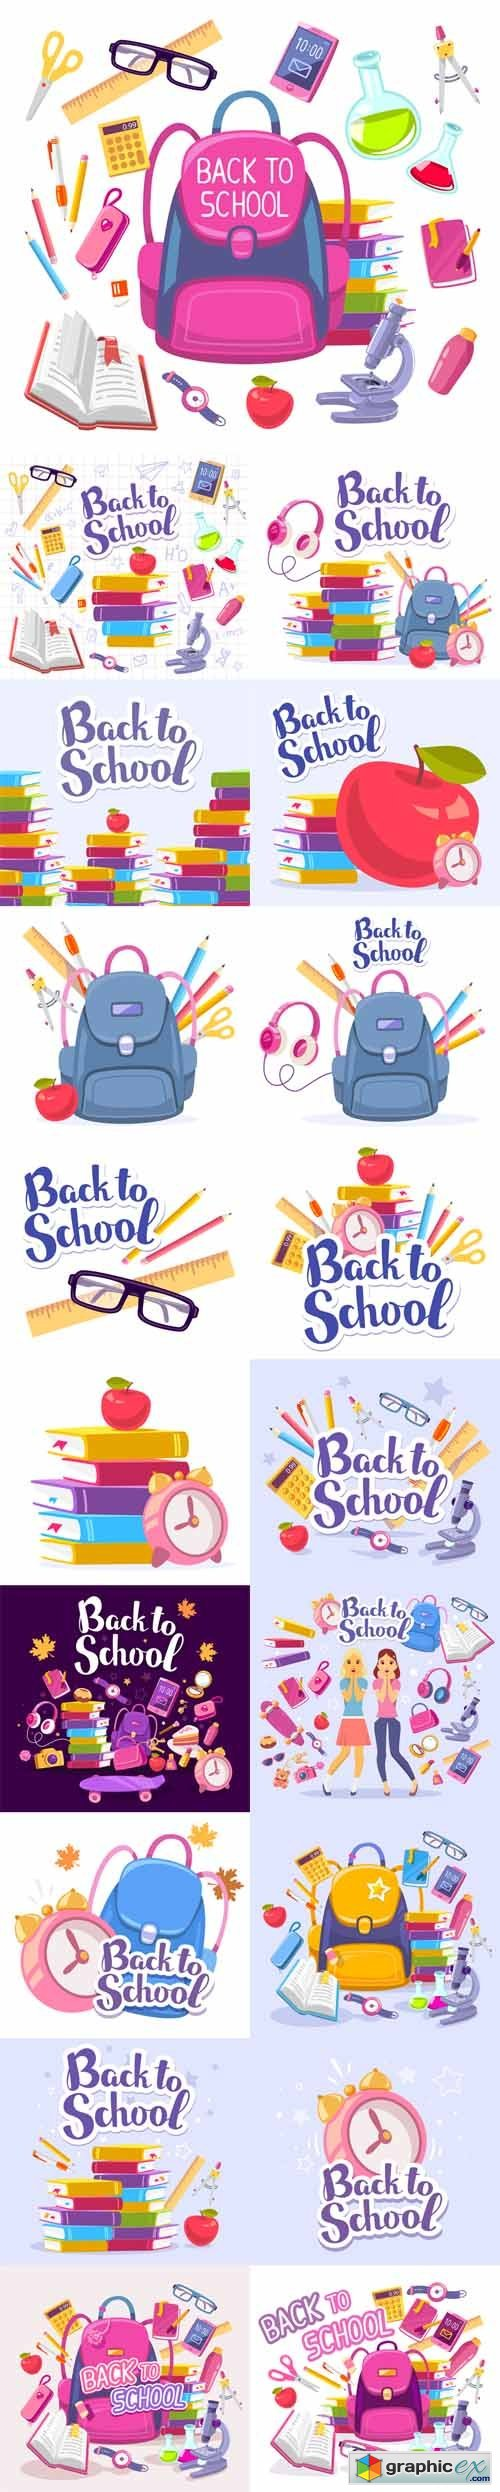 Colorful Illustration of Inscription Back to School